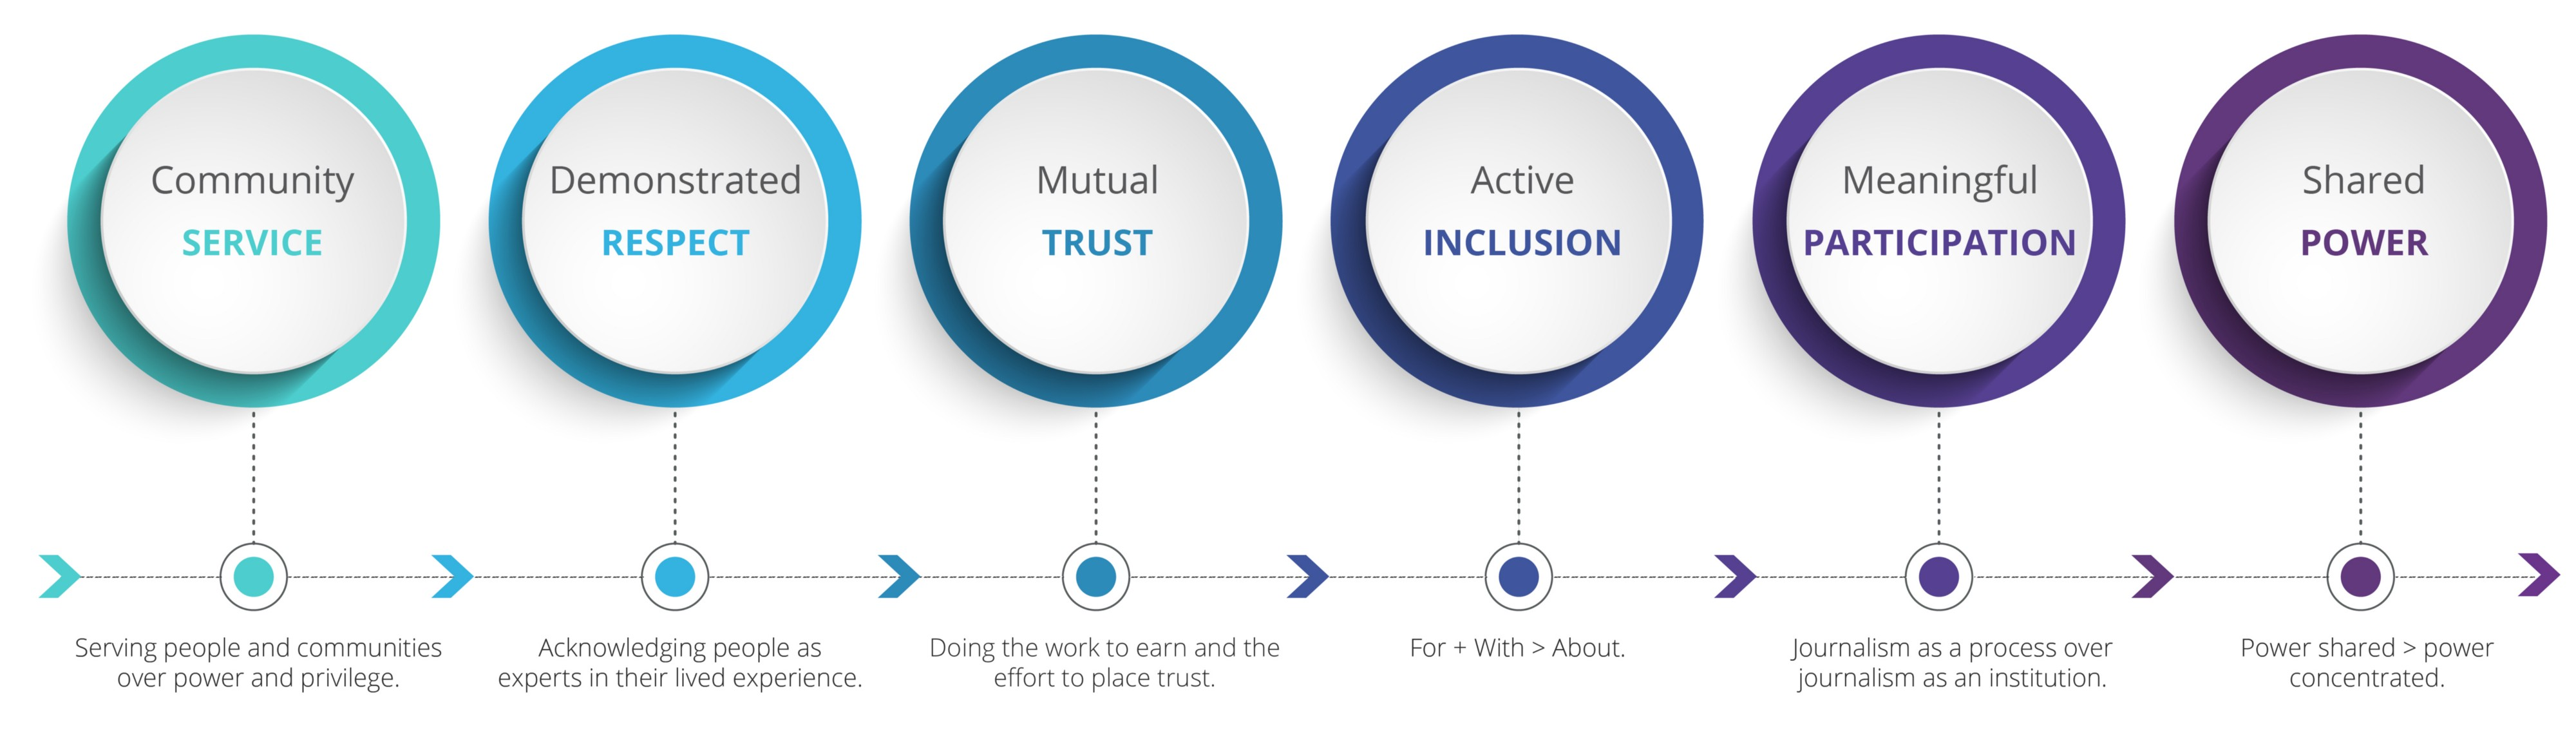 A Roadmap for Equitable Inclusion - Heather Bryant - Medium